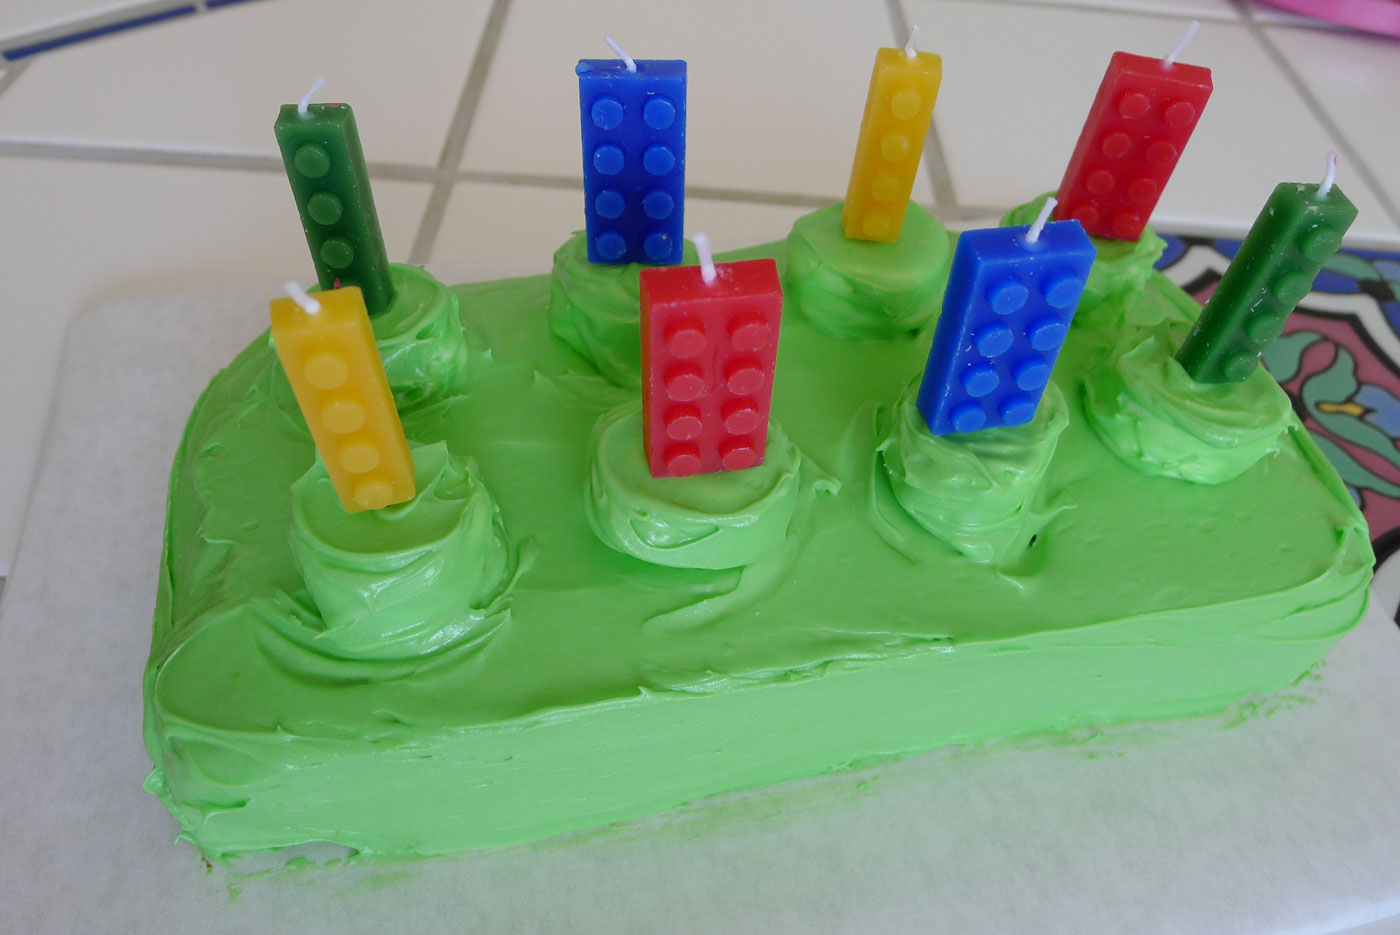 LEGO Candles Are Added To Cake